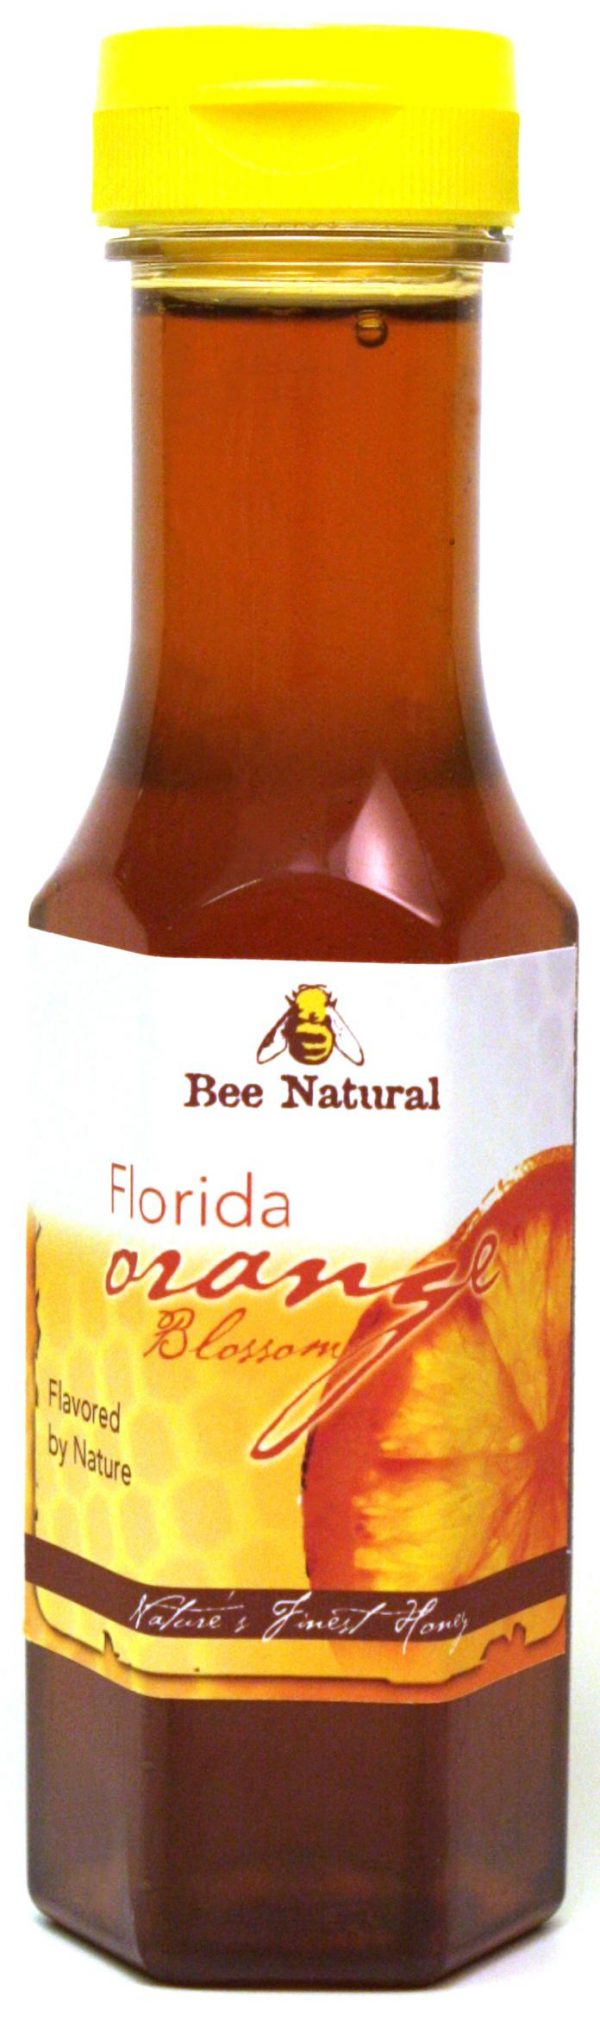 Case of 12 Orange Blossom Honey 12oz bottles 1